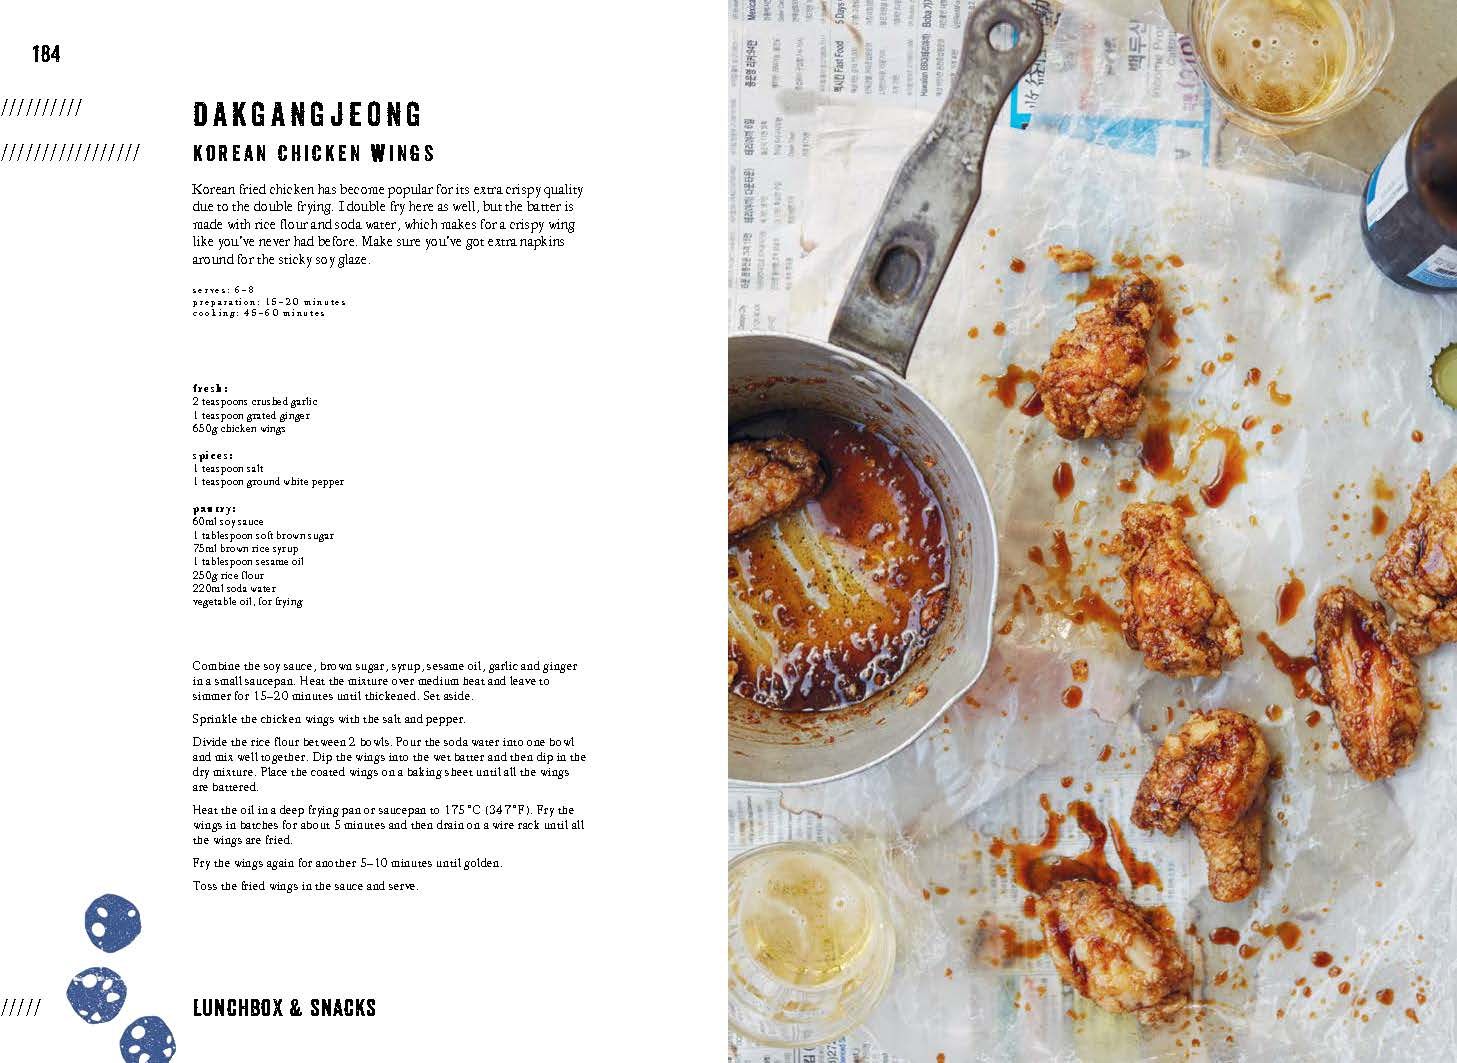 Korean food made easy by caroline hwang angus robertson books look inside click to expand contents forumfinder Image collections